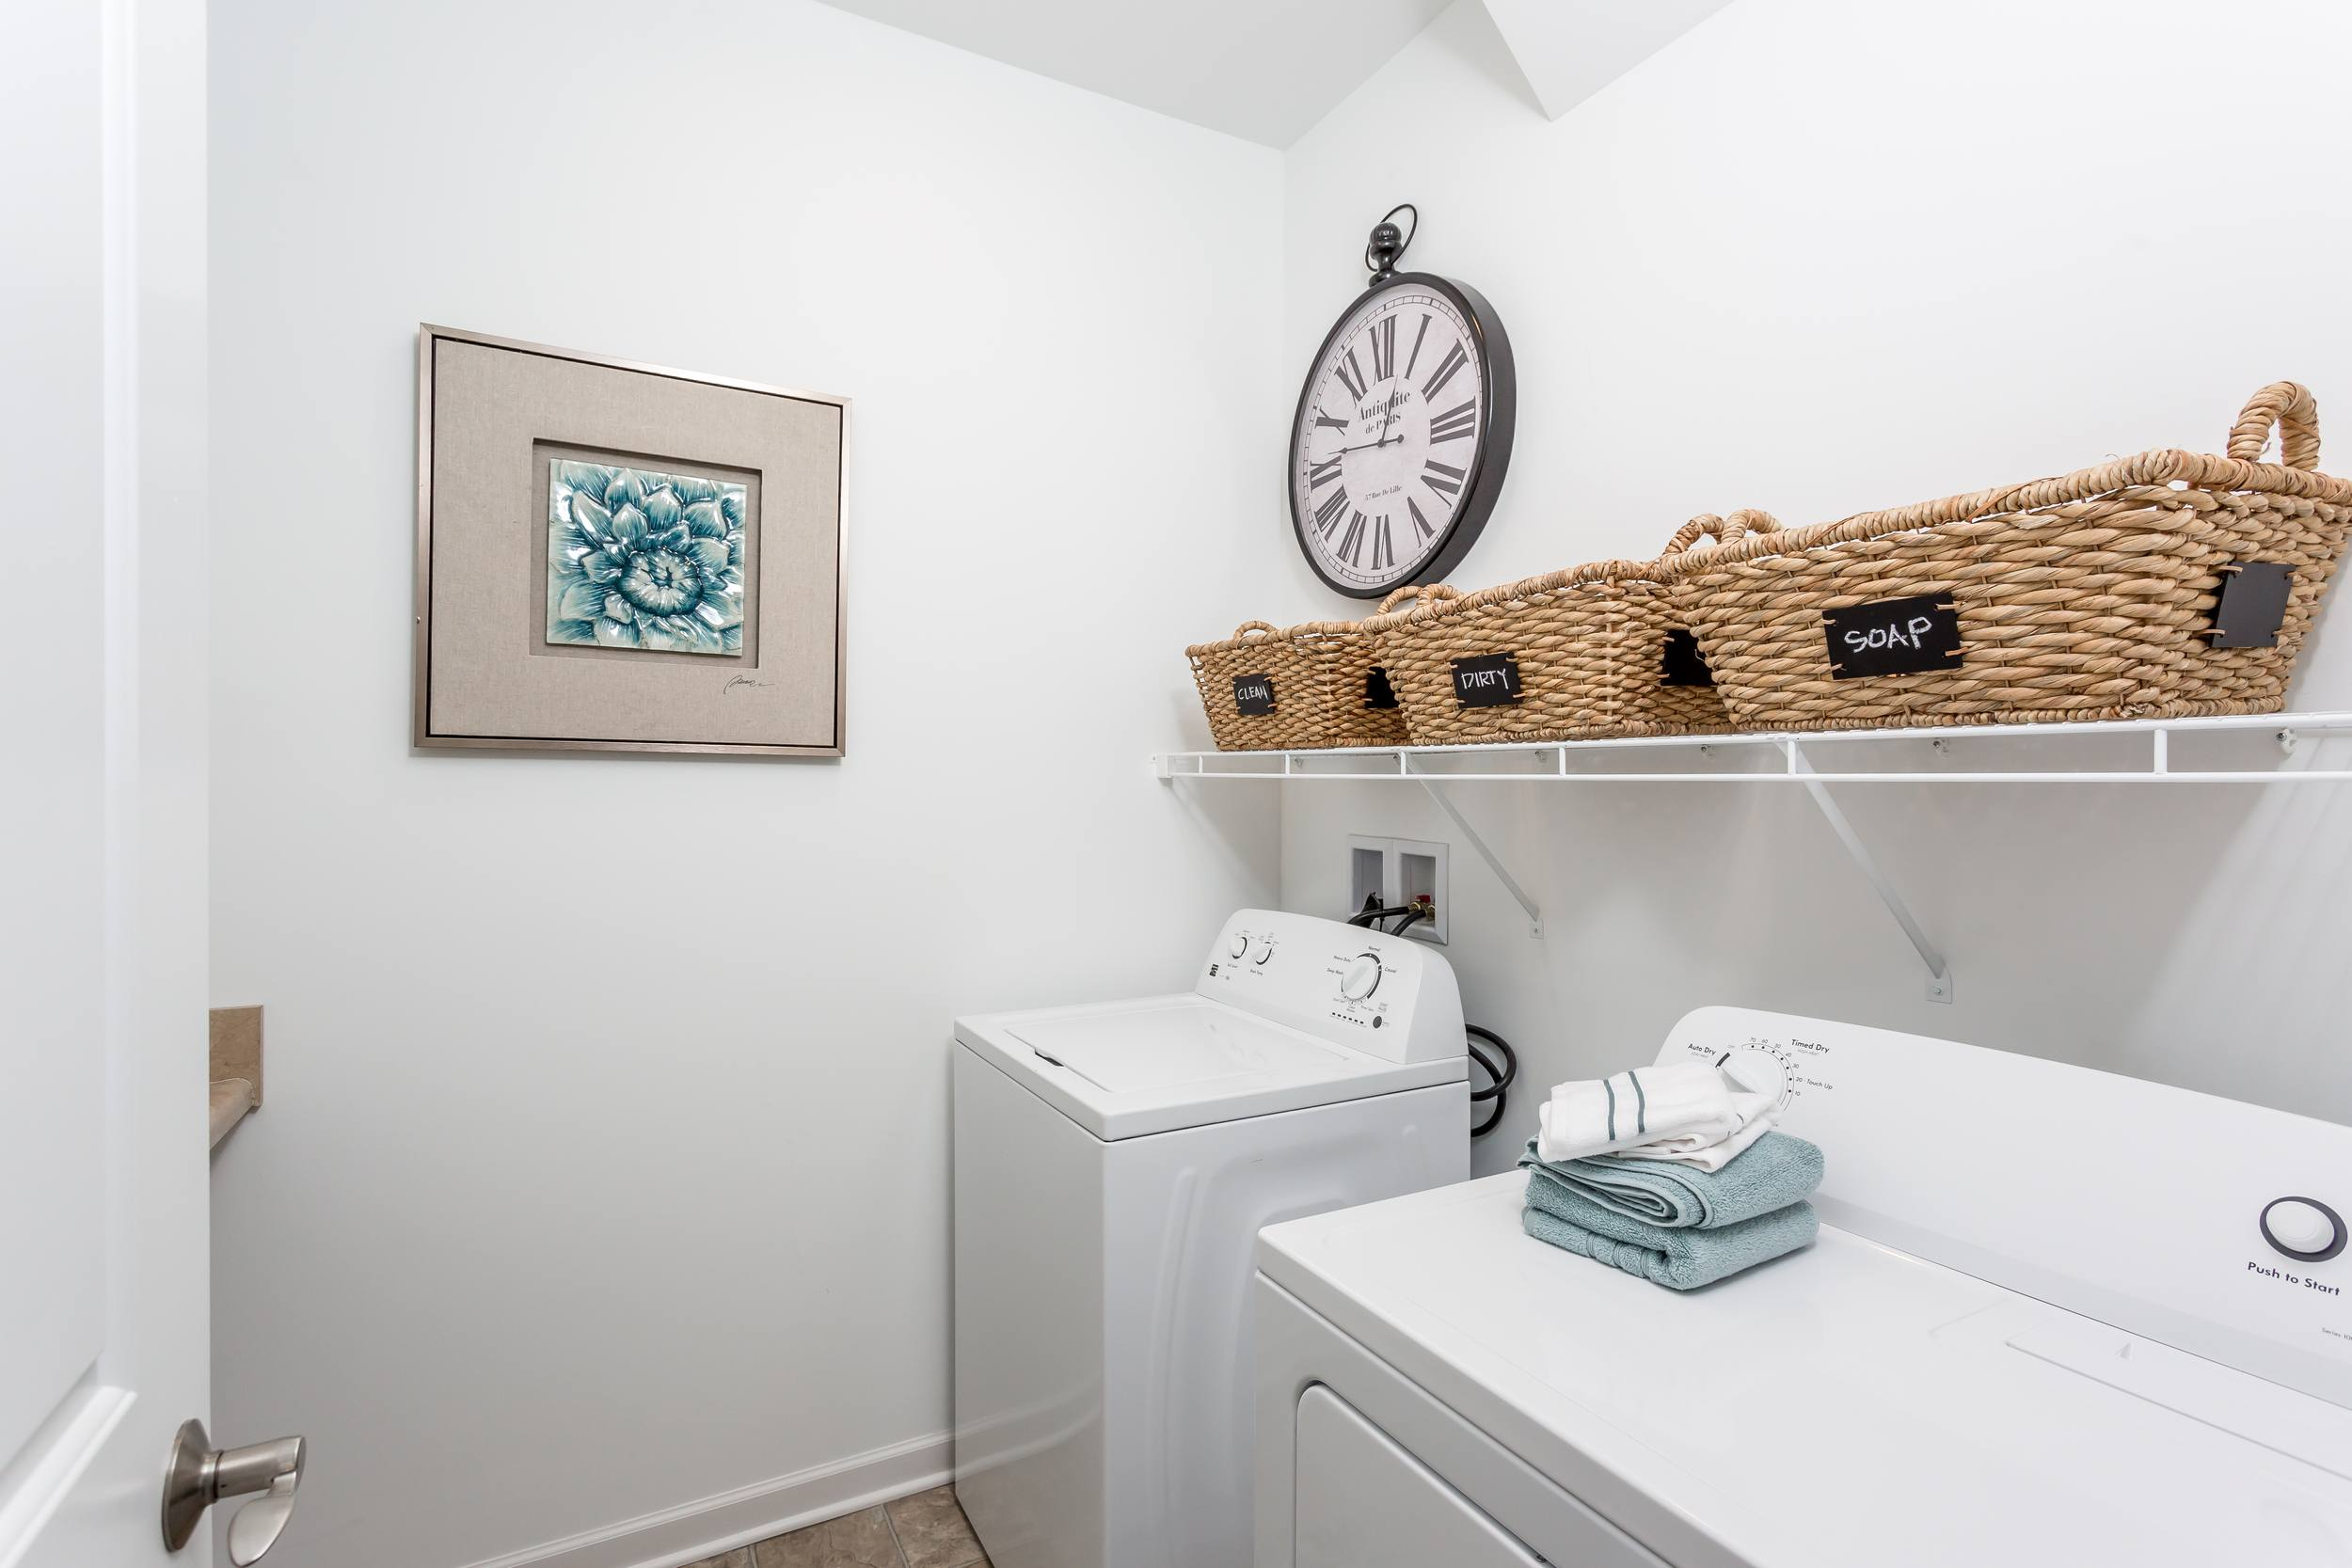 Washer and dryer at The Links at CenterPointe Townhomes in Canandaigua, NY